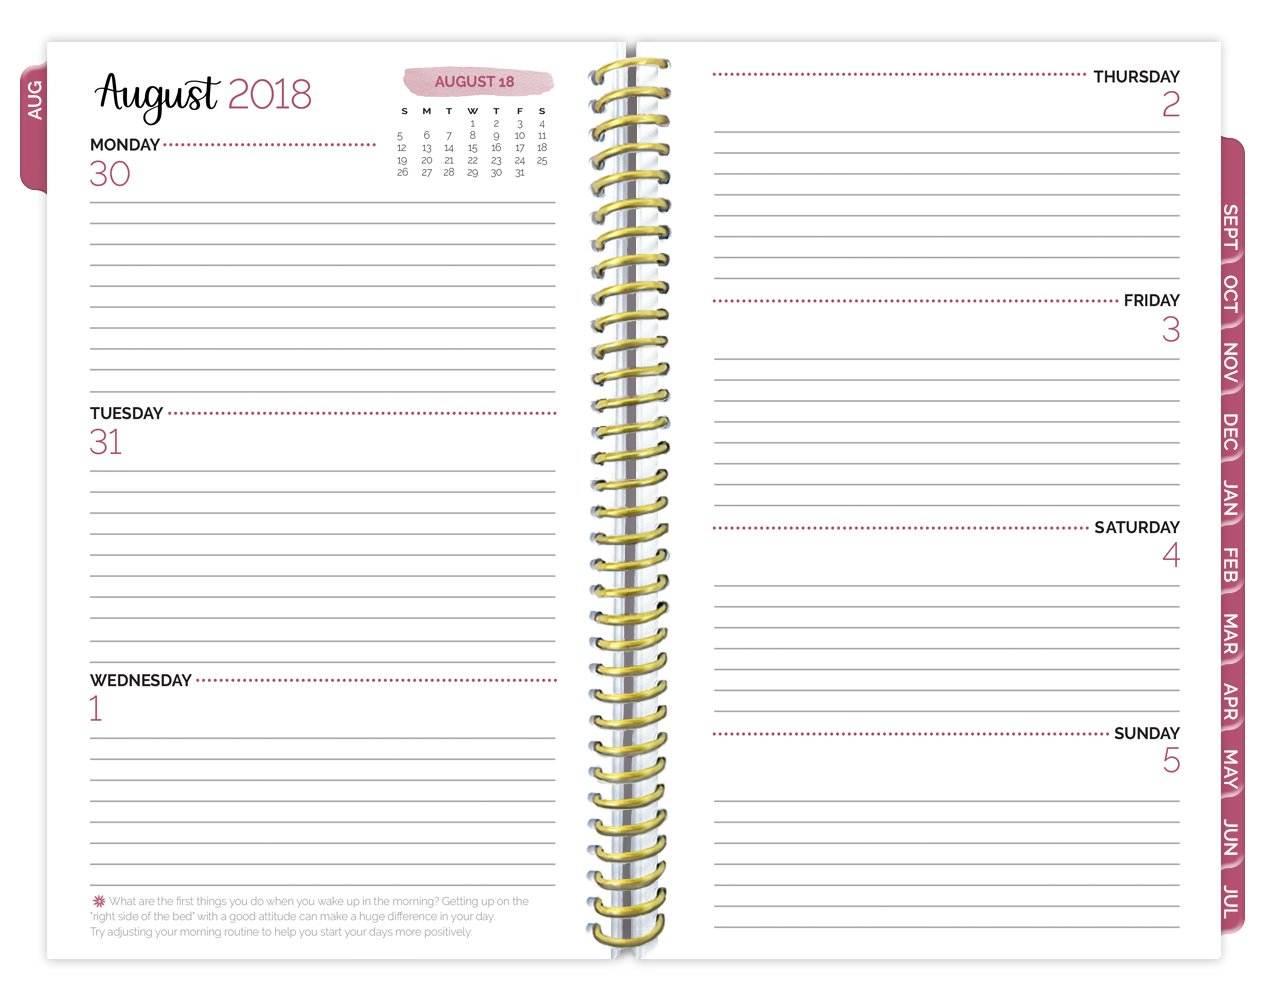 bloom daily planners 2018-2019 Academic Year Day Planner - Monthly and Weekly Calendar Book - Inspirational Dated Agenda Organizer - (August 2018 - July 2019) - 6'' x 8.25'' - Marble by bloom daily planners (Image #4)